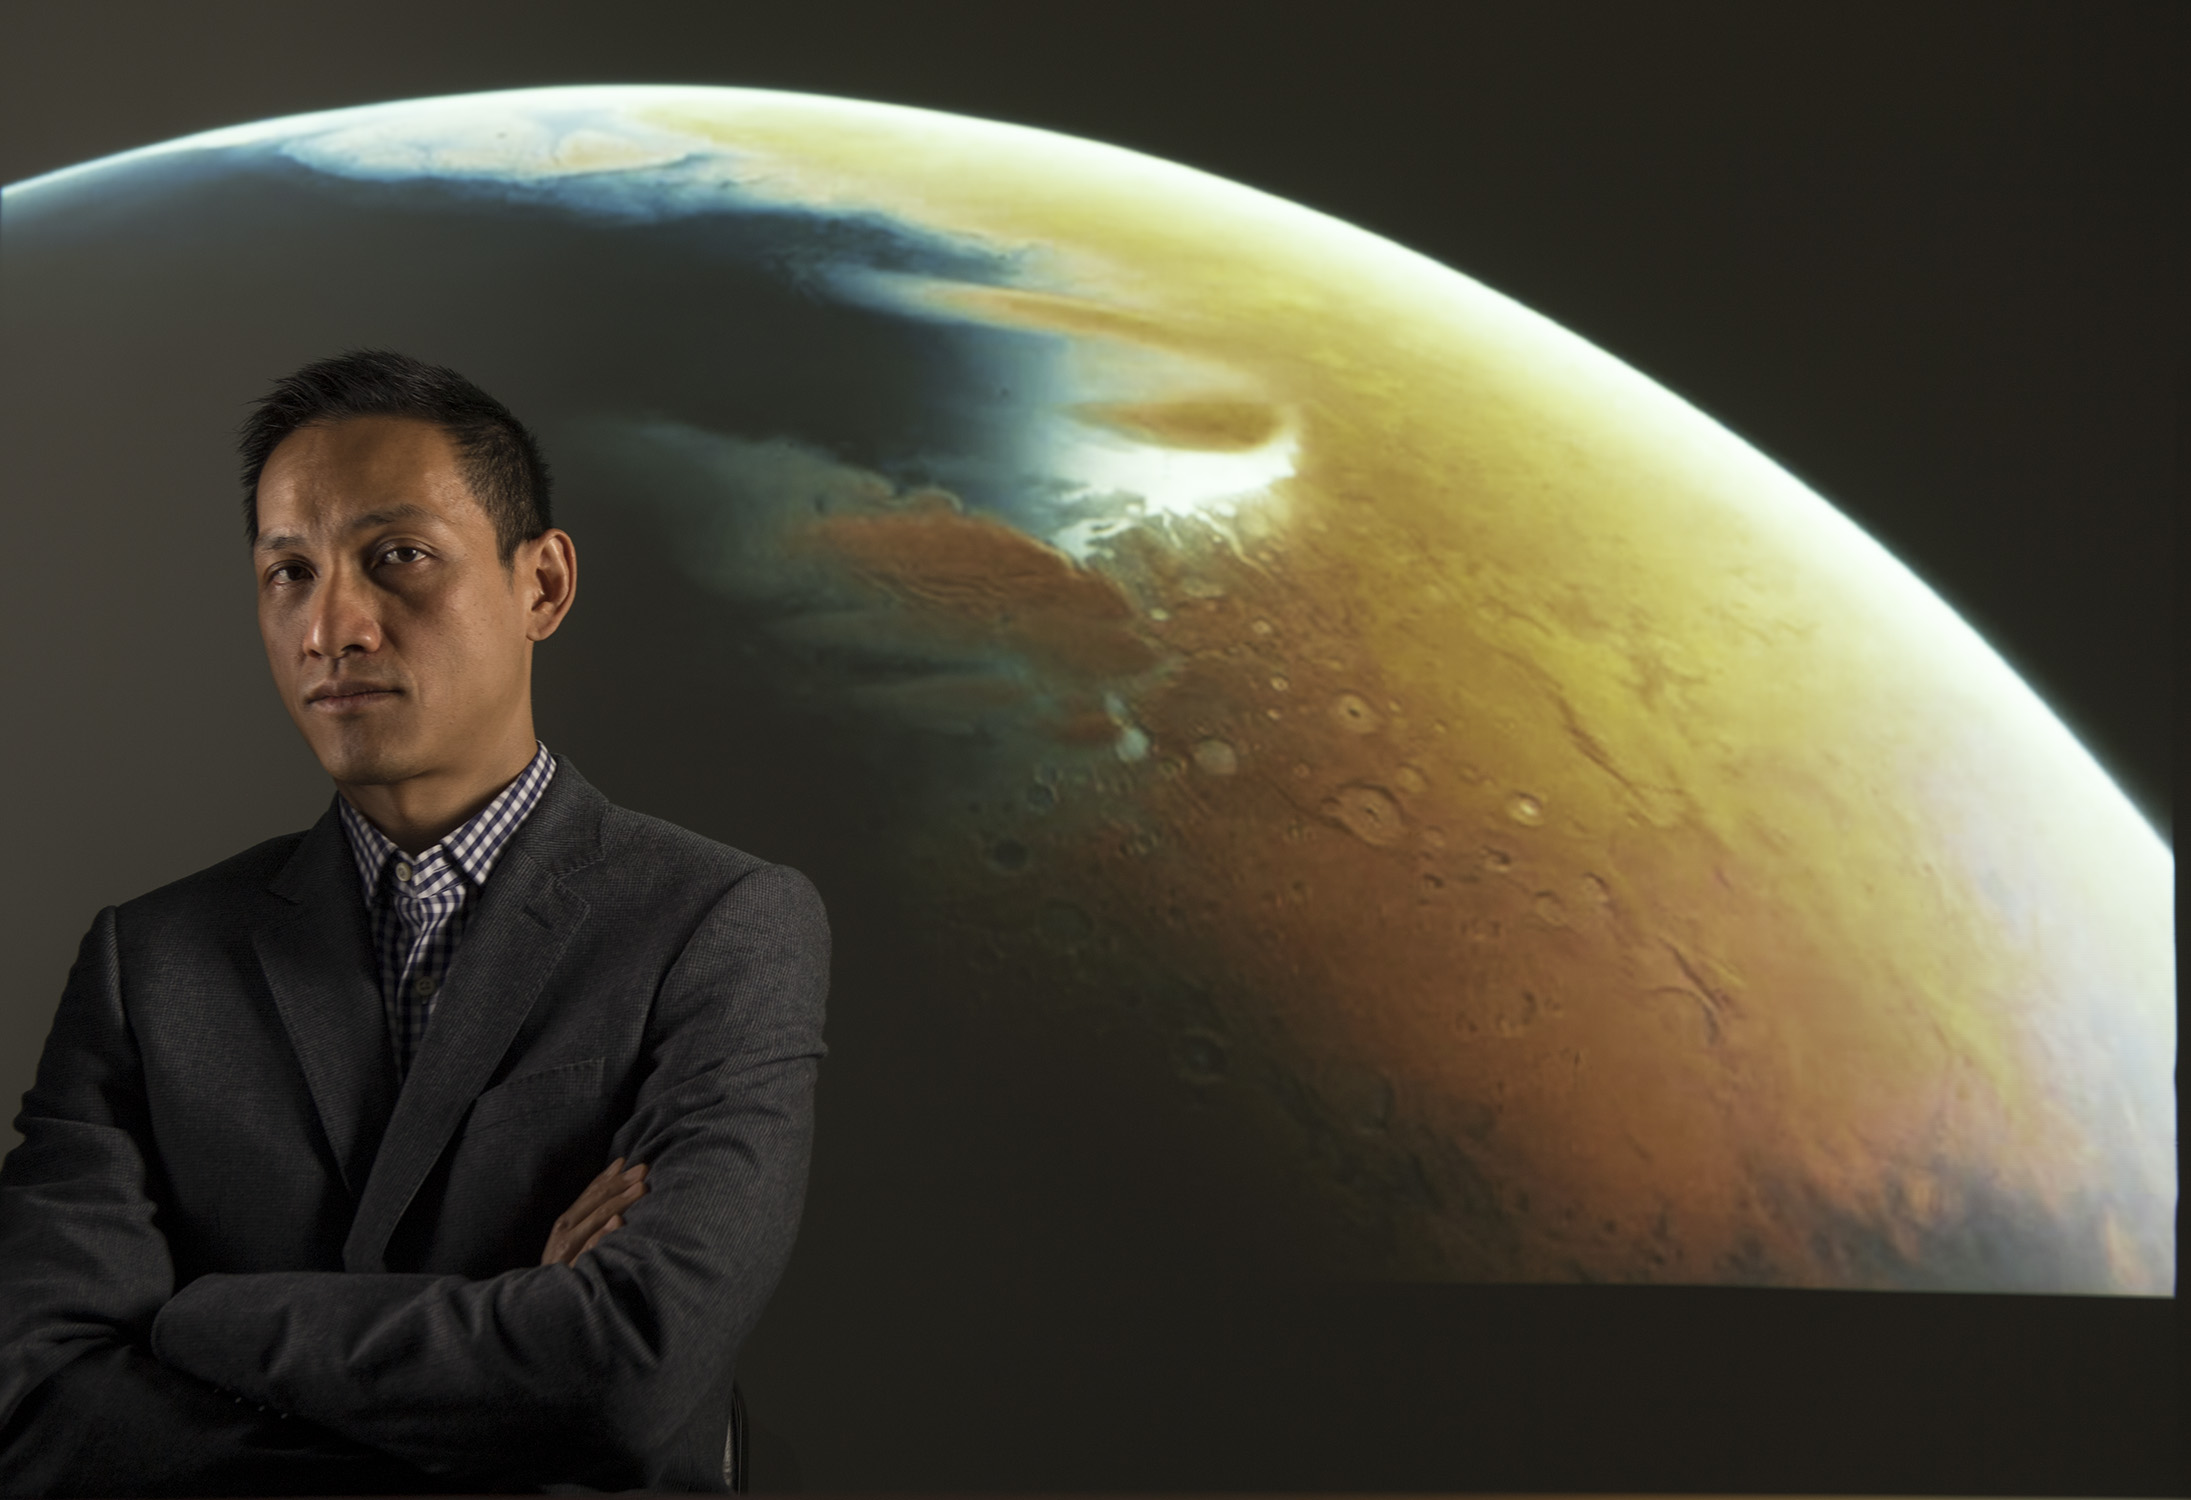 Are we alone in the universe? Rutgers scientist says we're trying to figure that out.